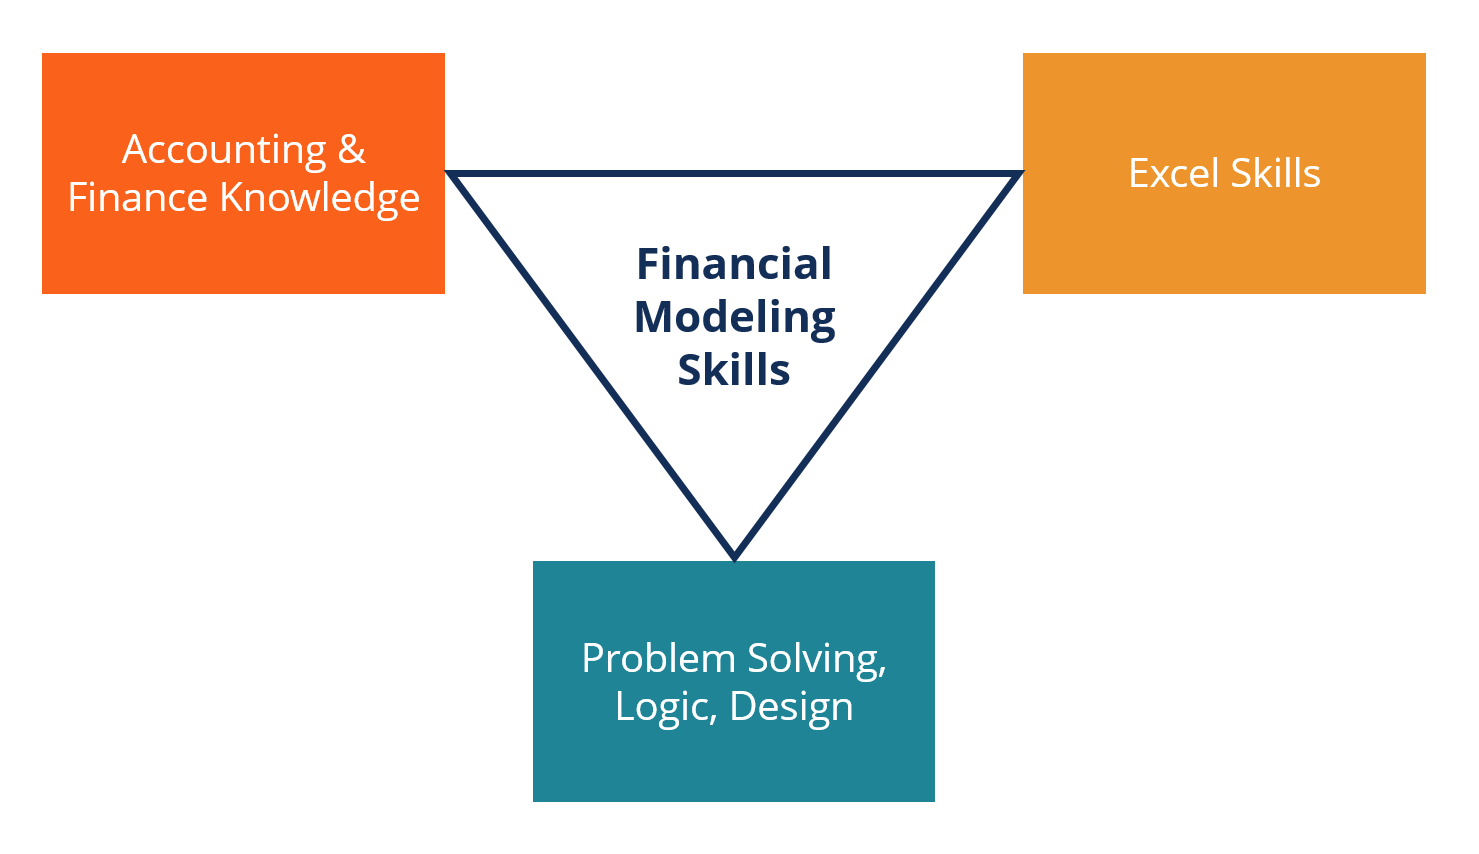 Financial Modeling Skills